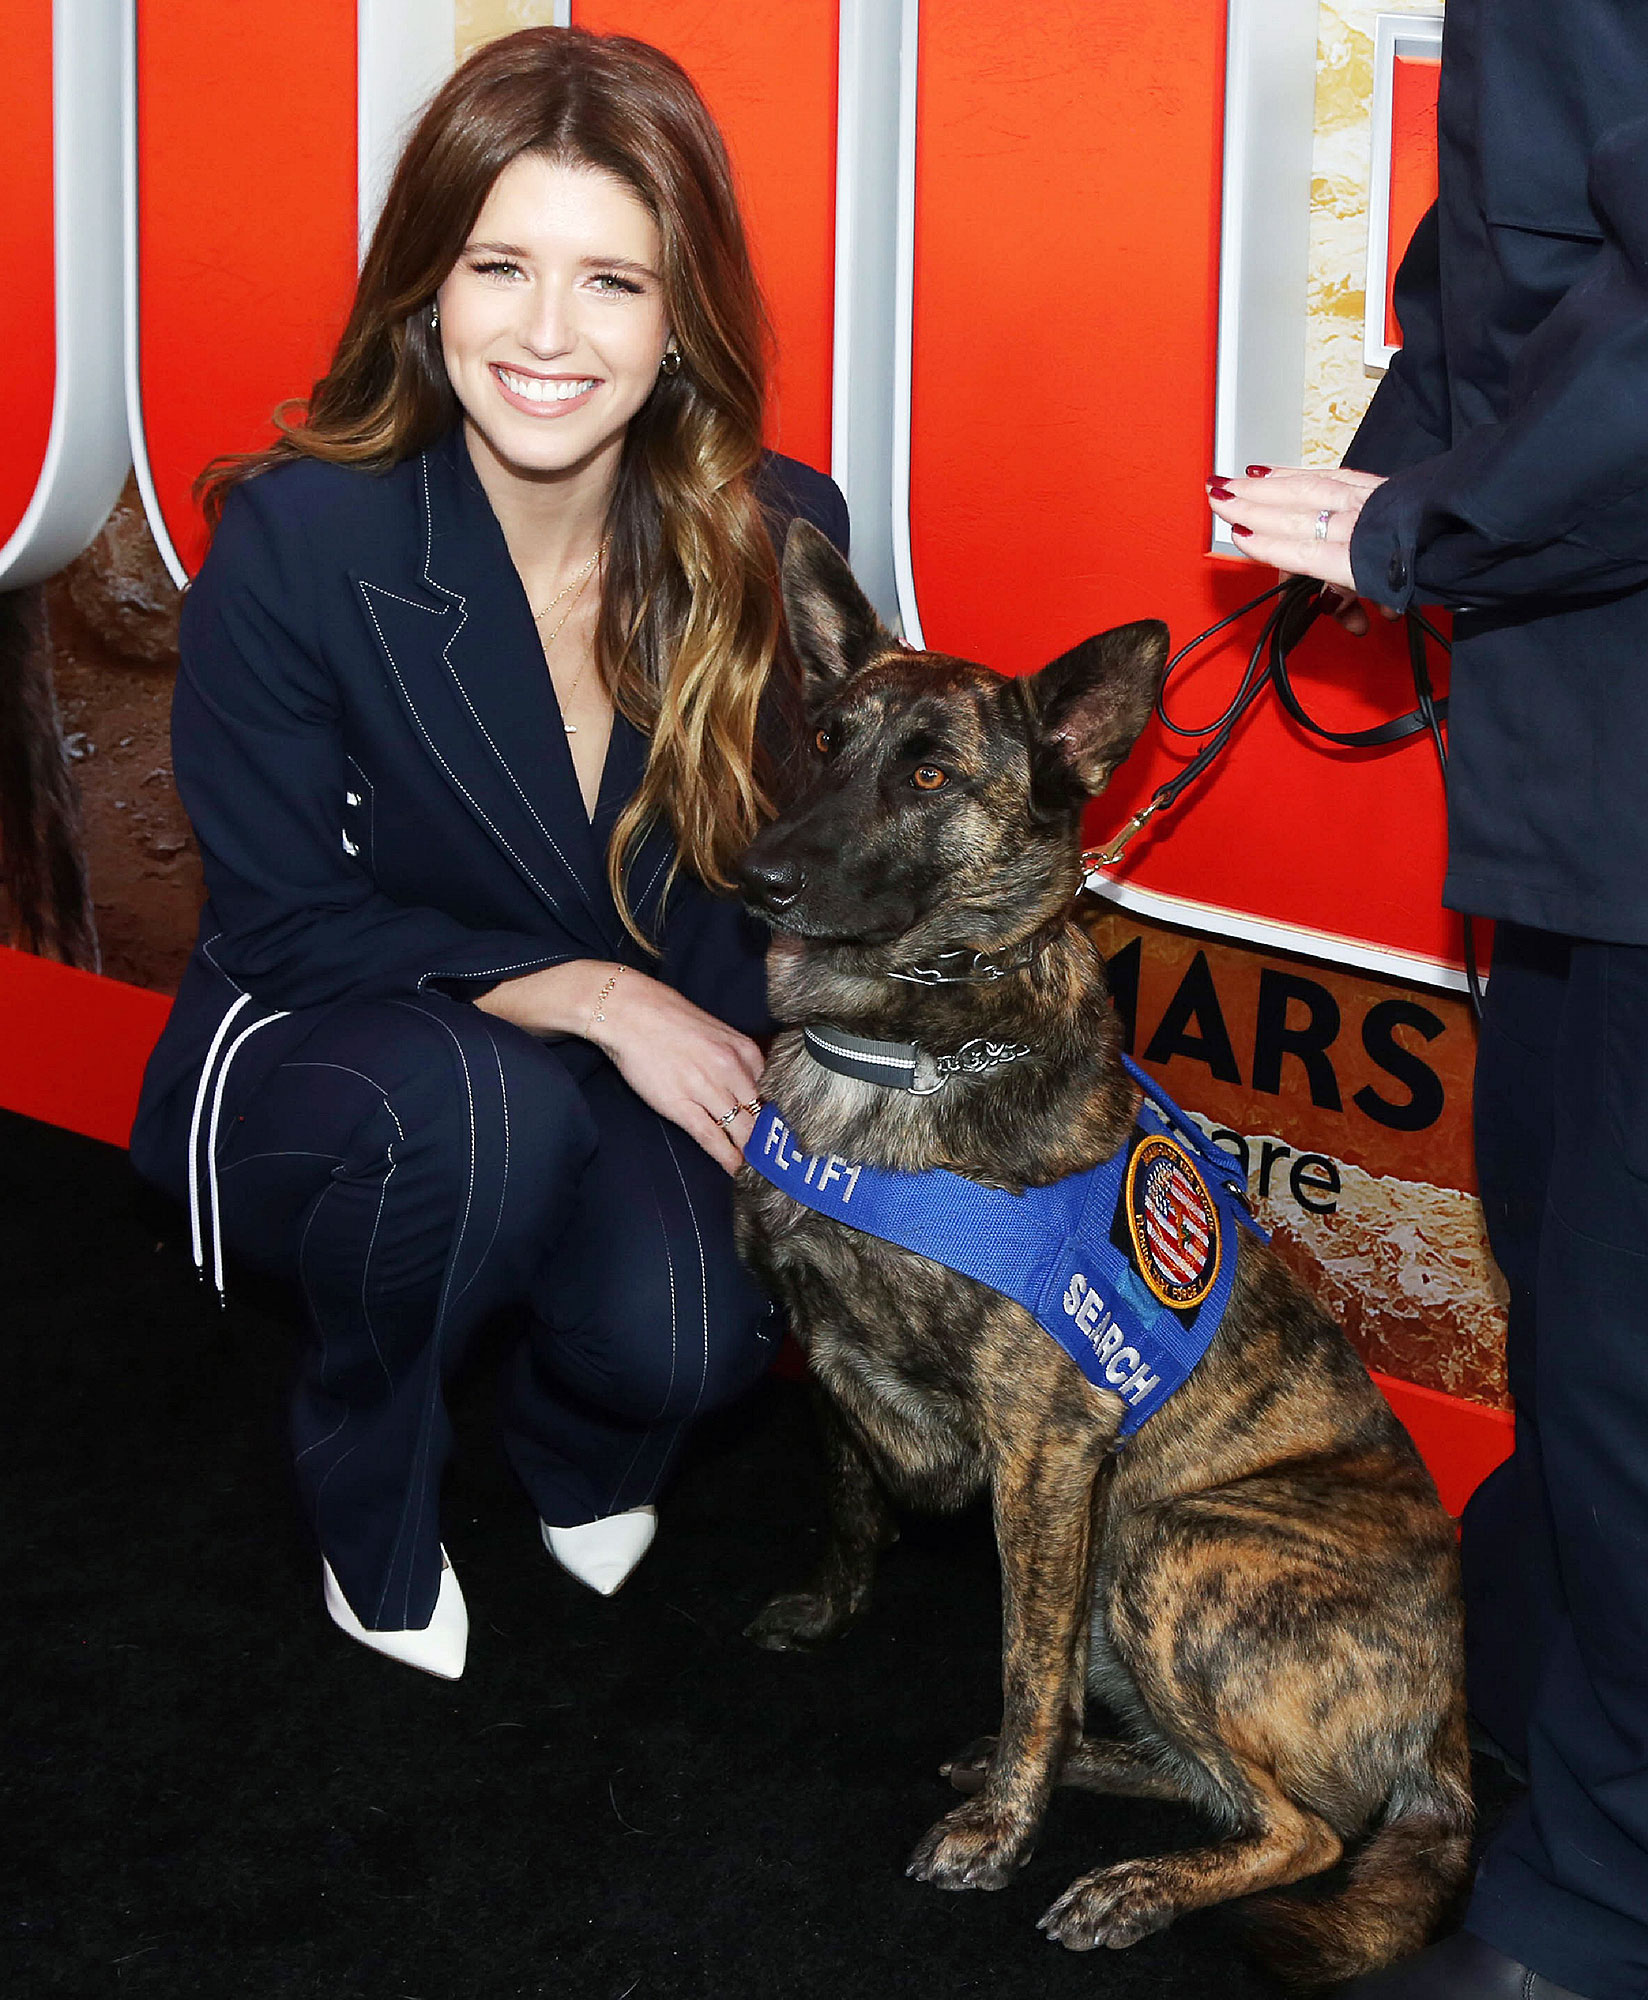 Katherine Schwarzenegger Tips Fostering Owning Dogs